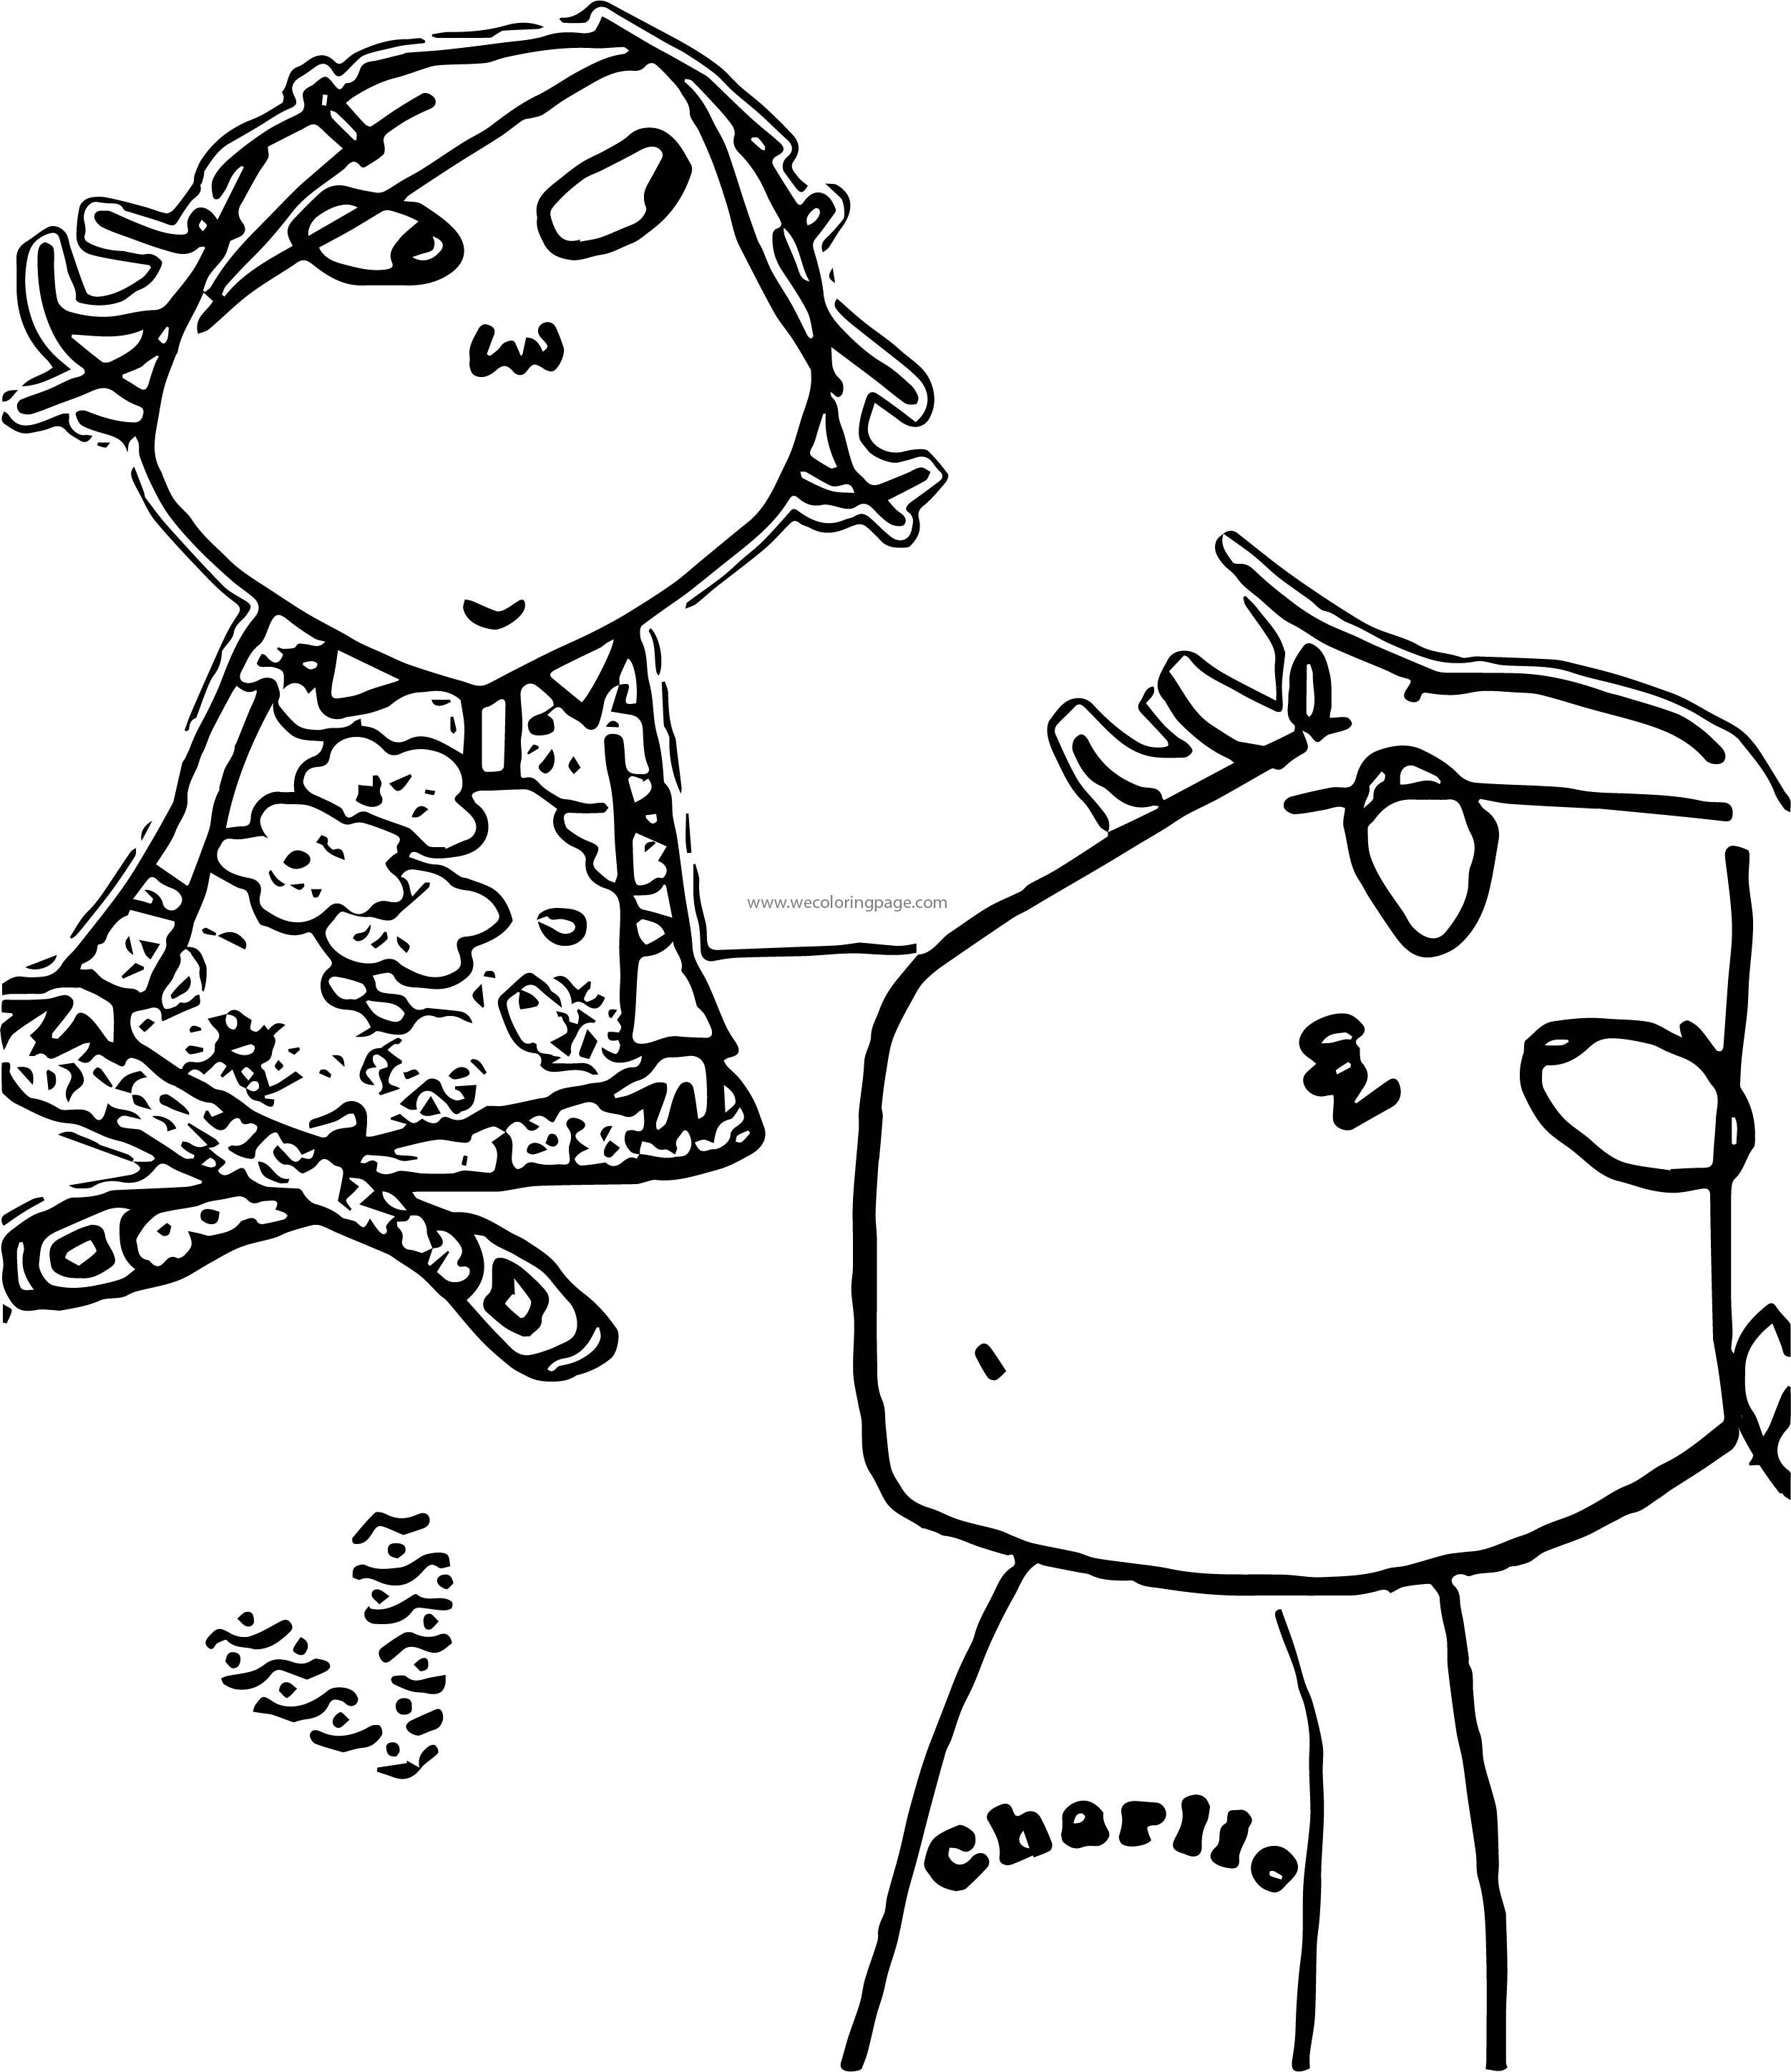 coloring pages to print charlie and lola | Charlie And Lola Coloring Page 16 | Wecoloringpage.com